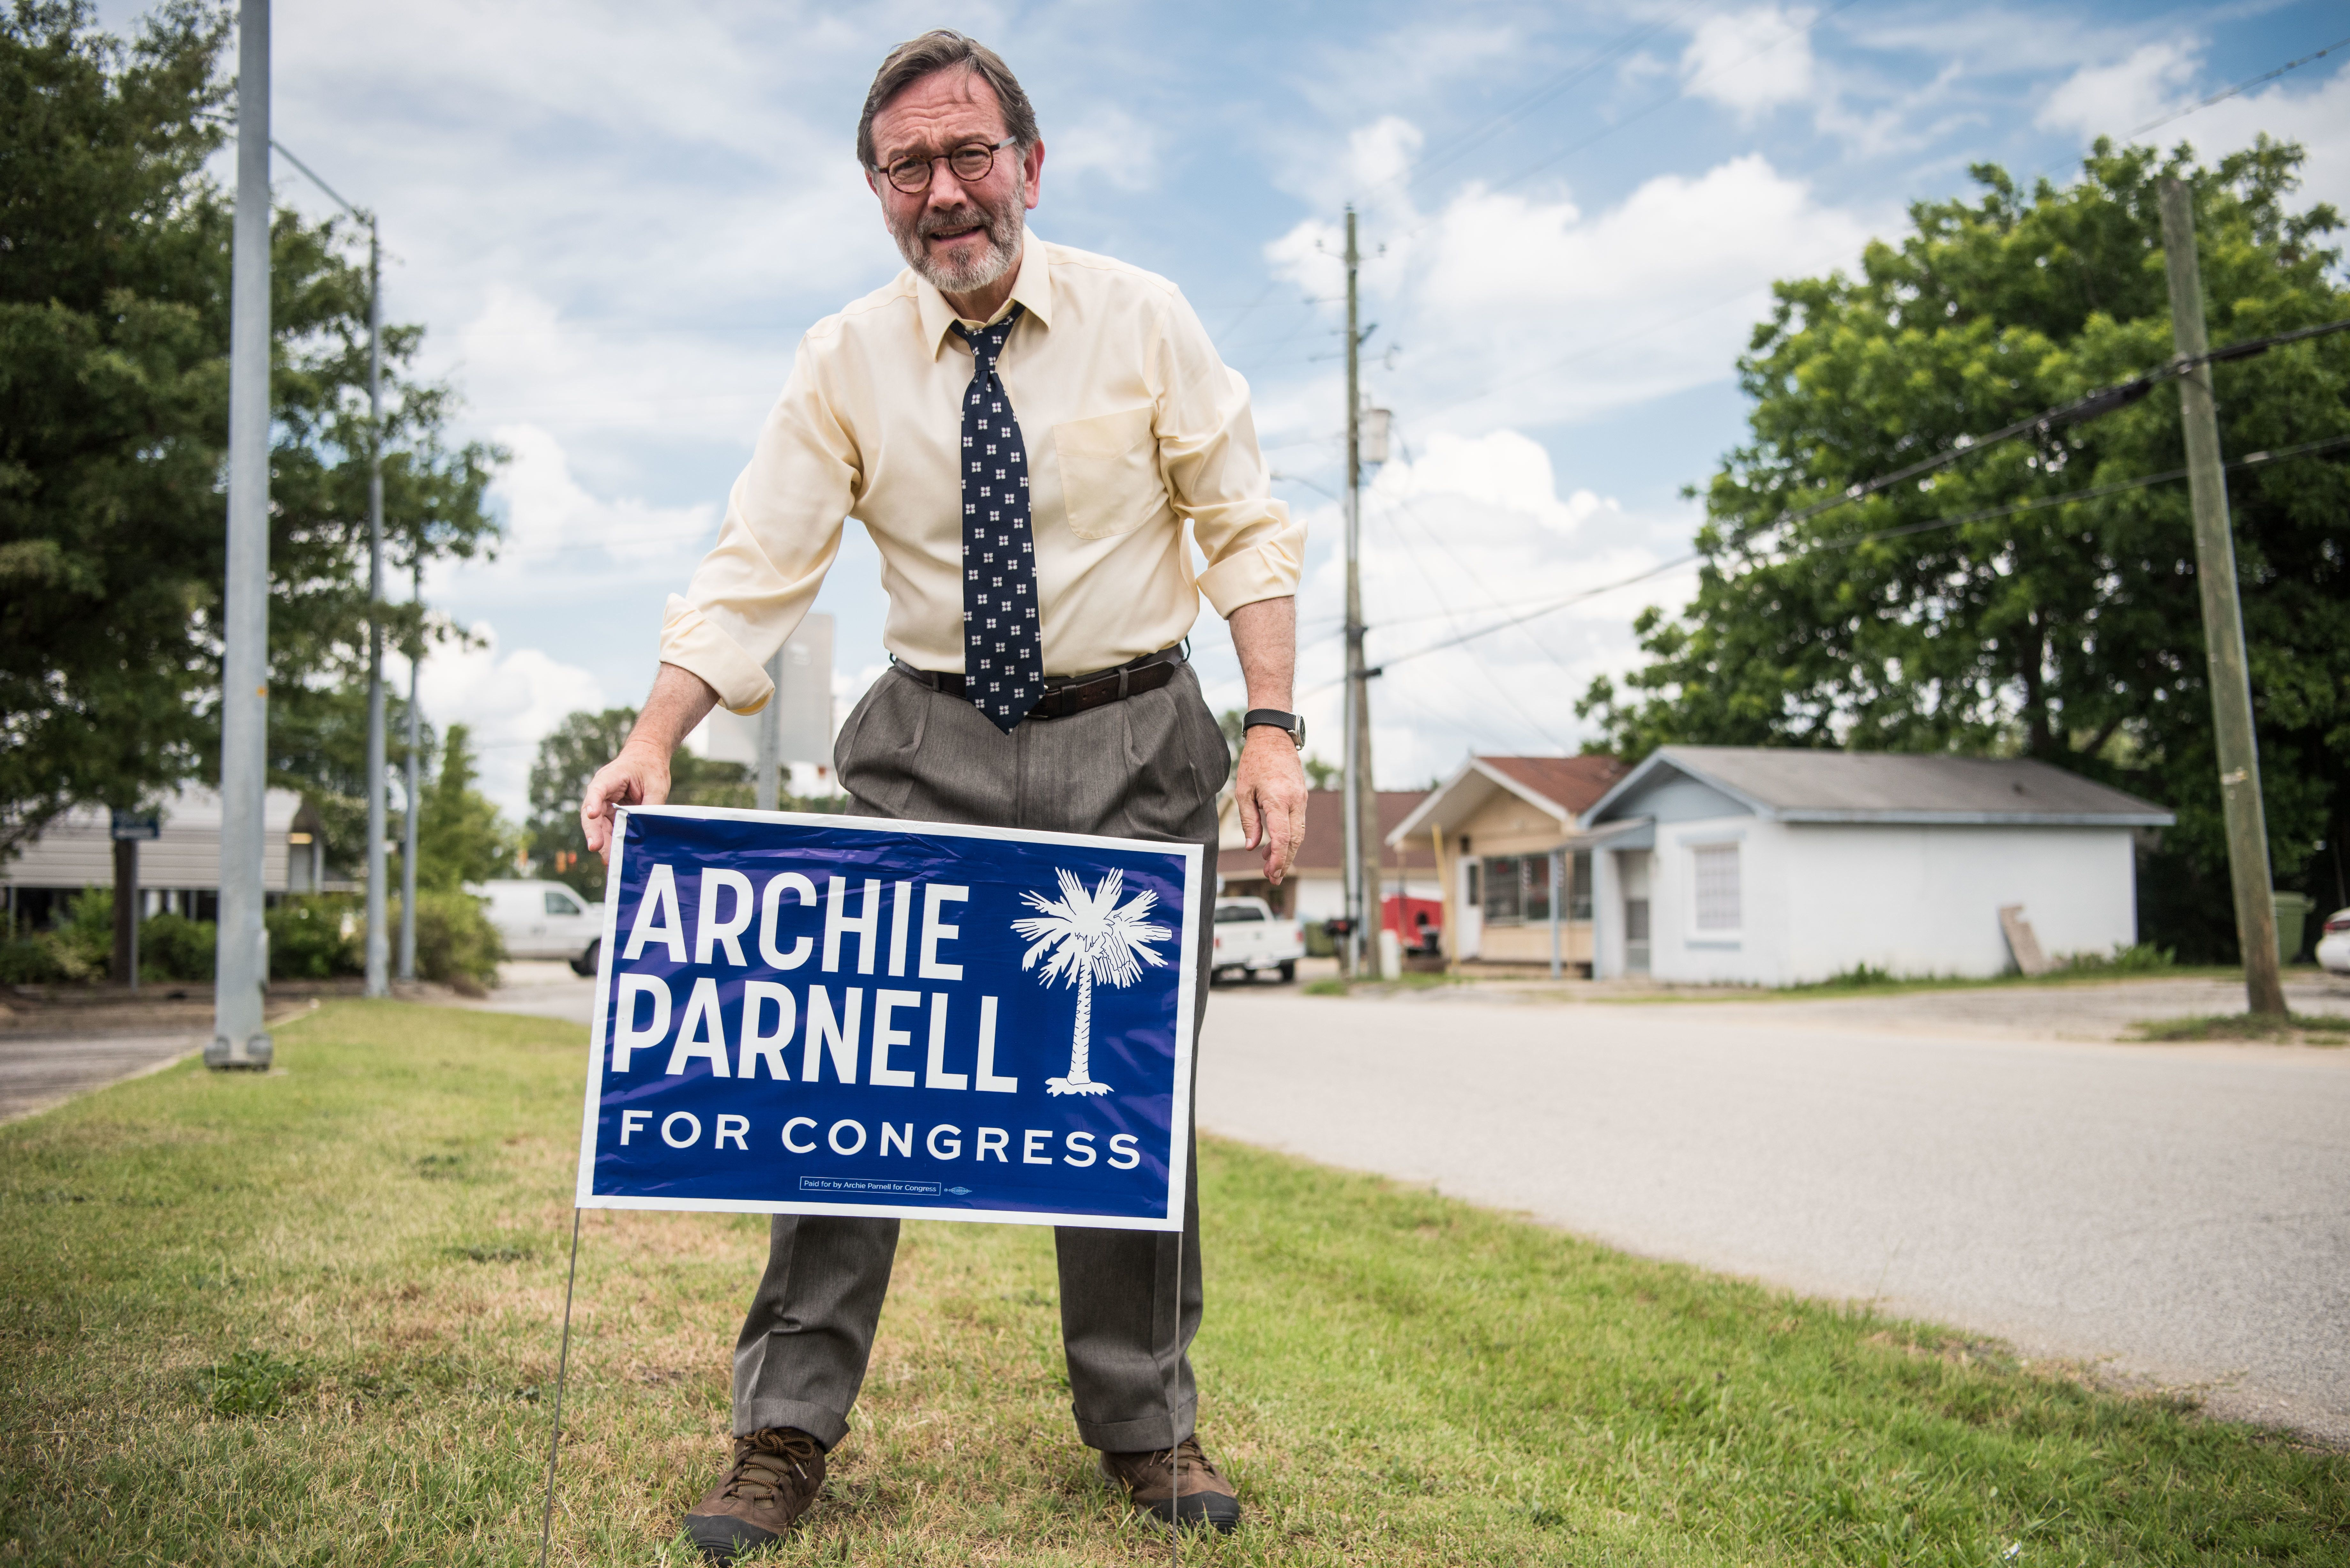 South Carolina DemocratArchie Parnell in 2017, when he unsuccessfully ran for a House seat in a special election. He is